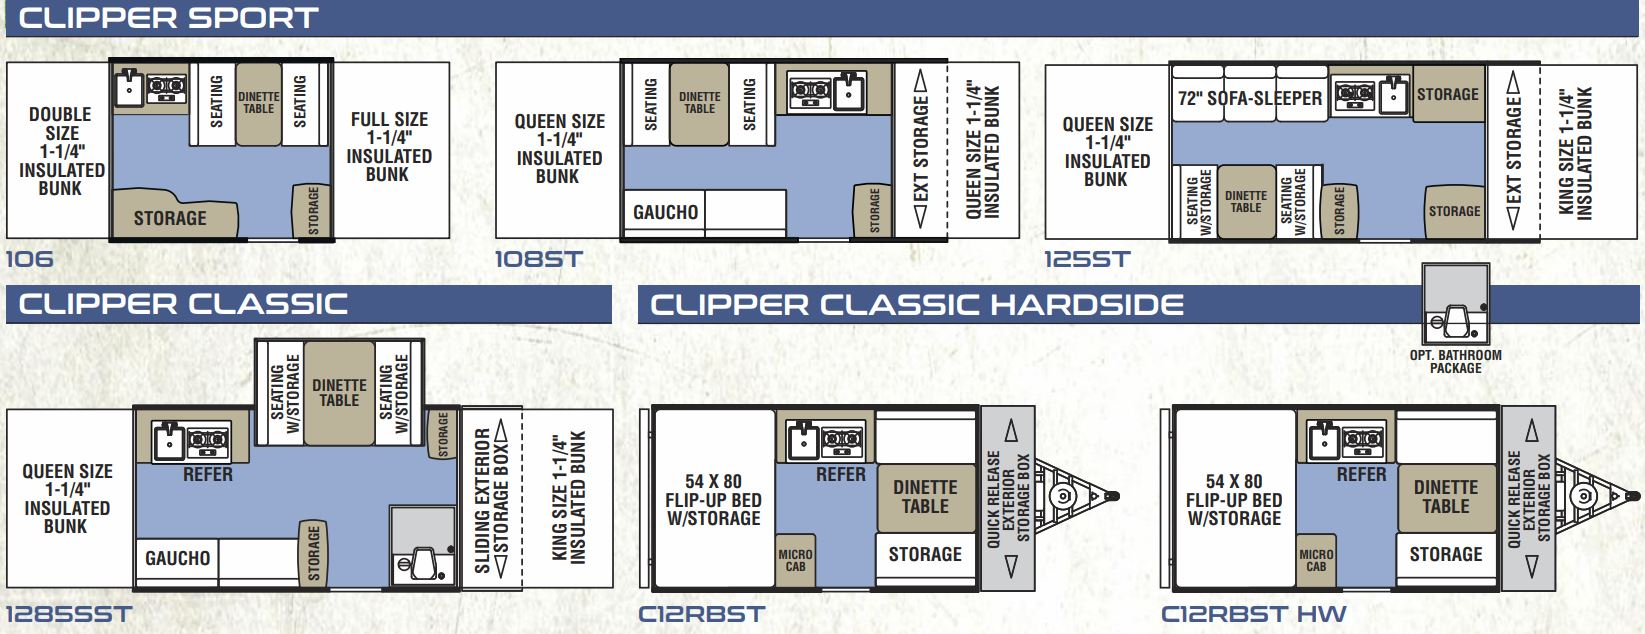 Clipper Sport and Classic Layouts